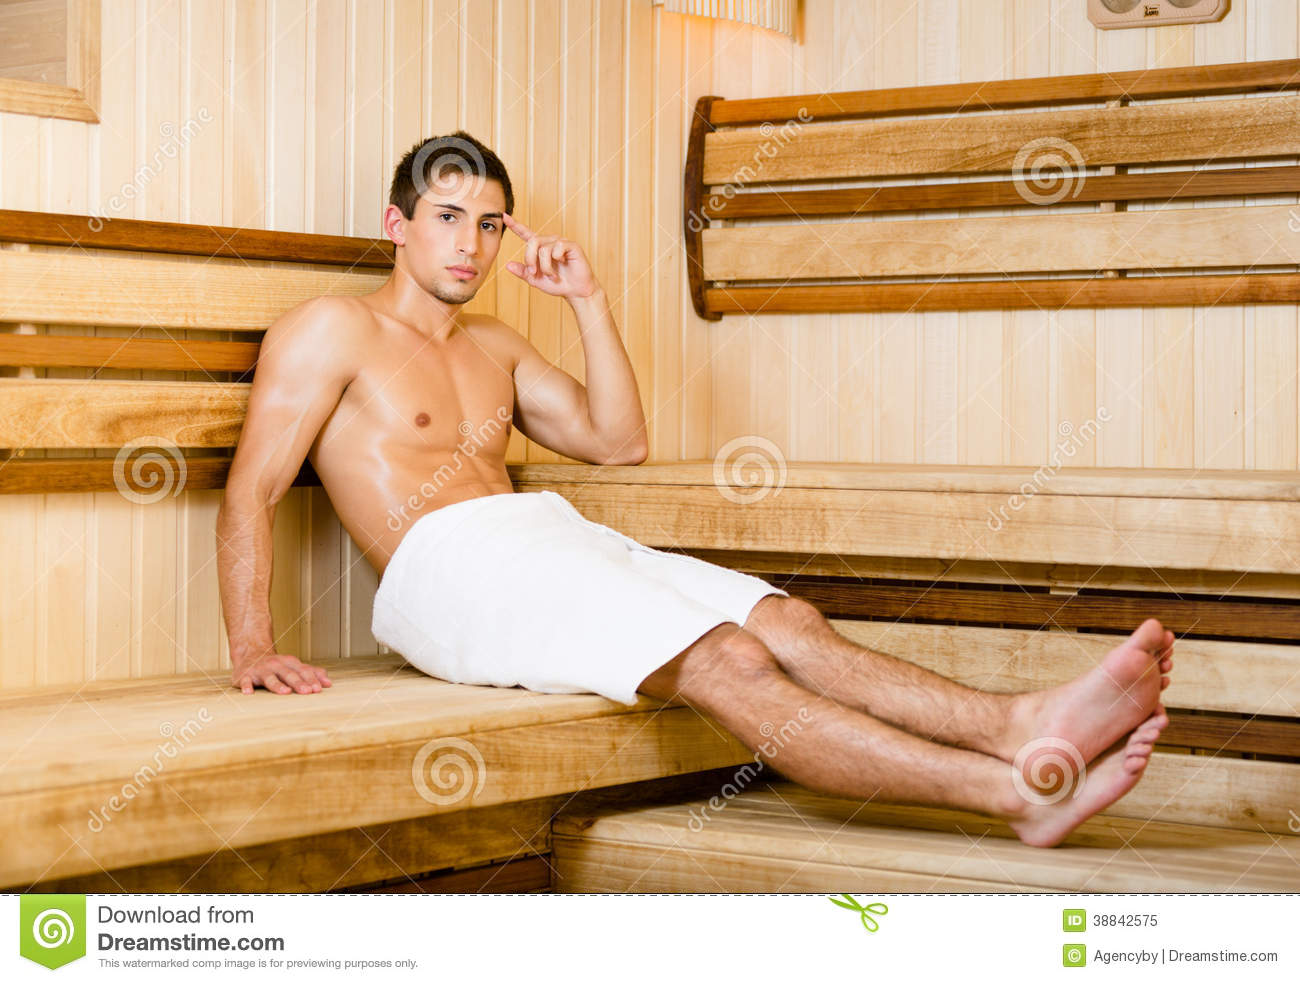 Hawks Gym - Las Vegas - Nevada - USA - Spartacus Gay Sauna